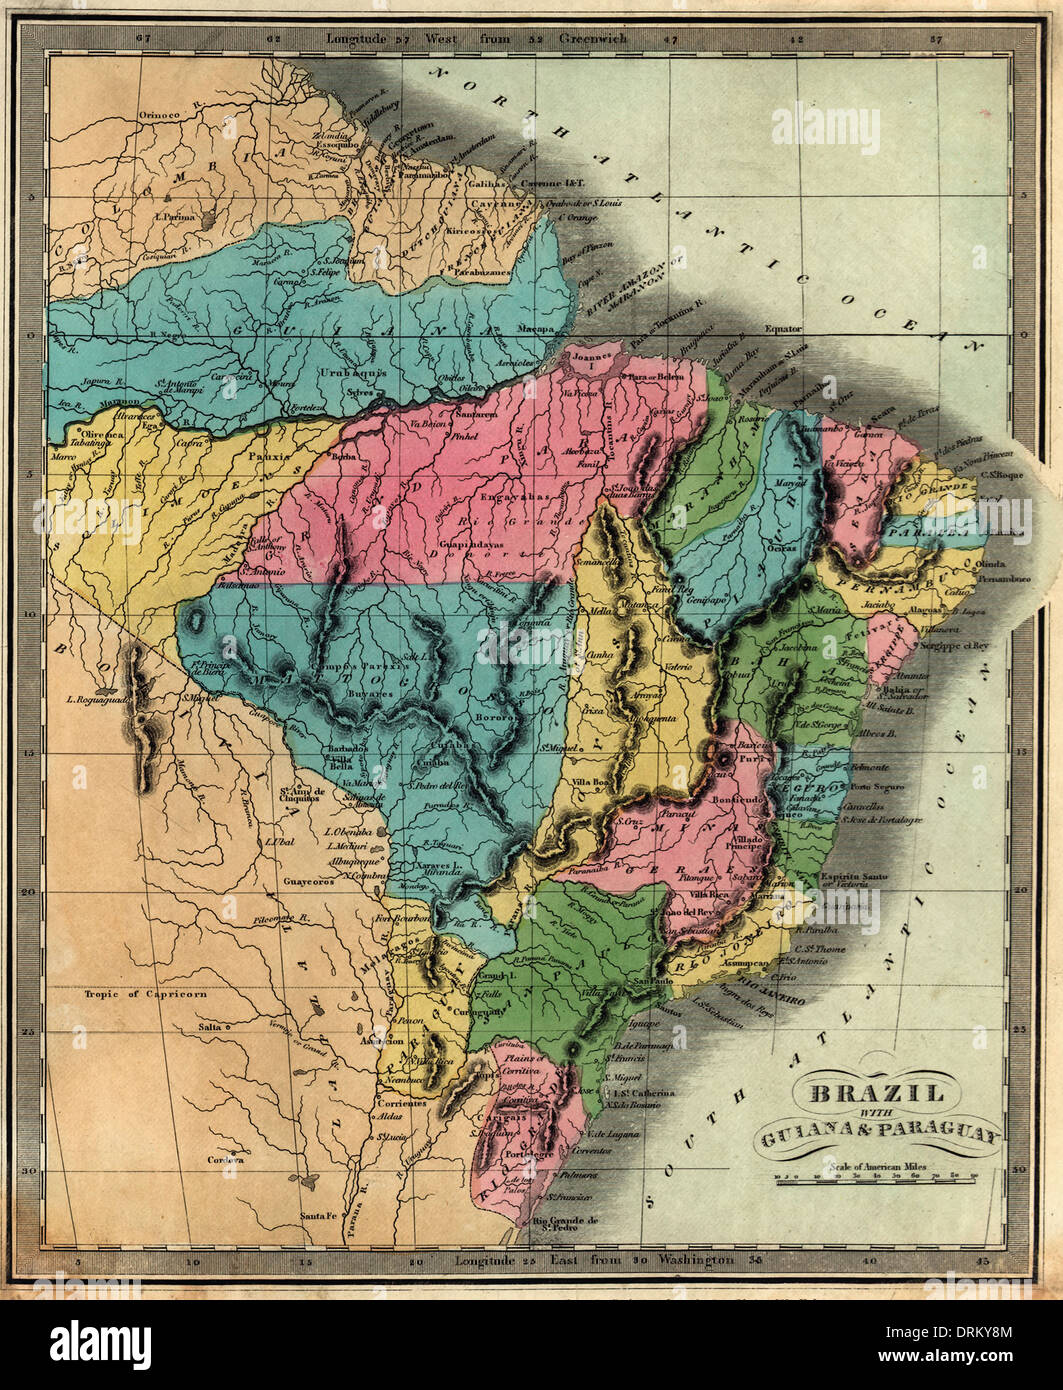 Map of Brazil with Guiana & Paraguay. 1834 - Stock Image